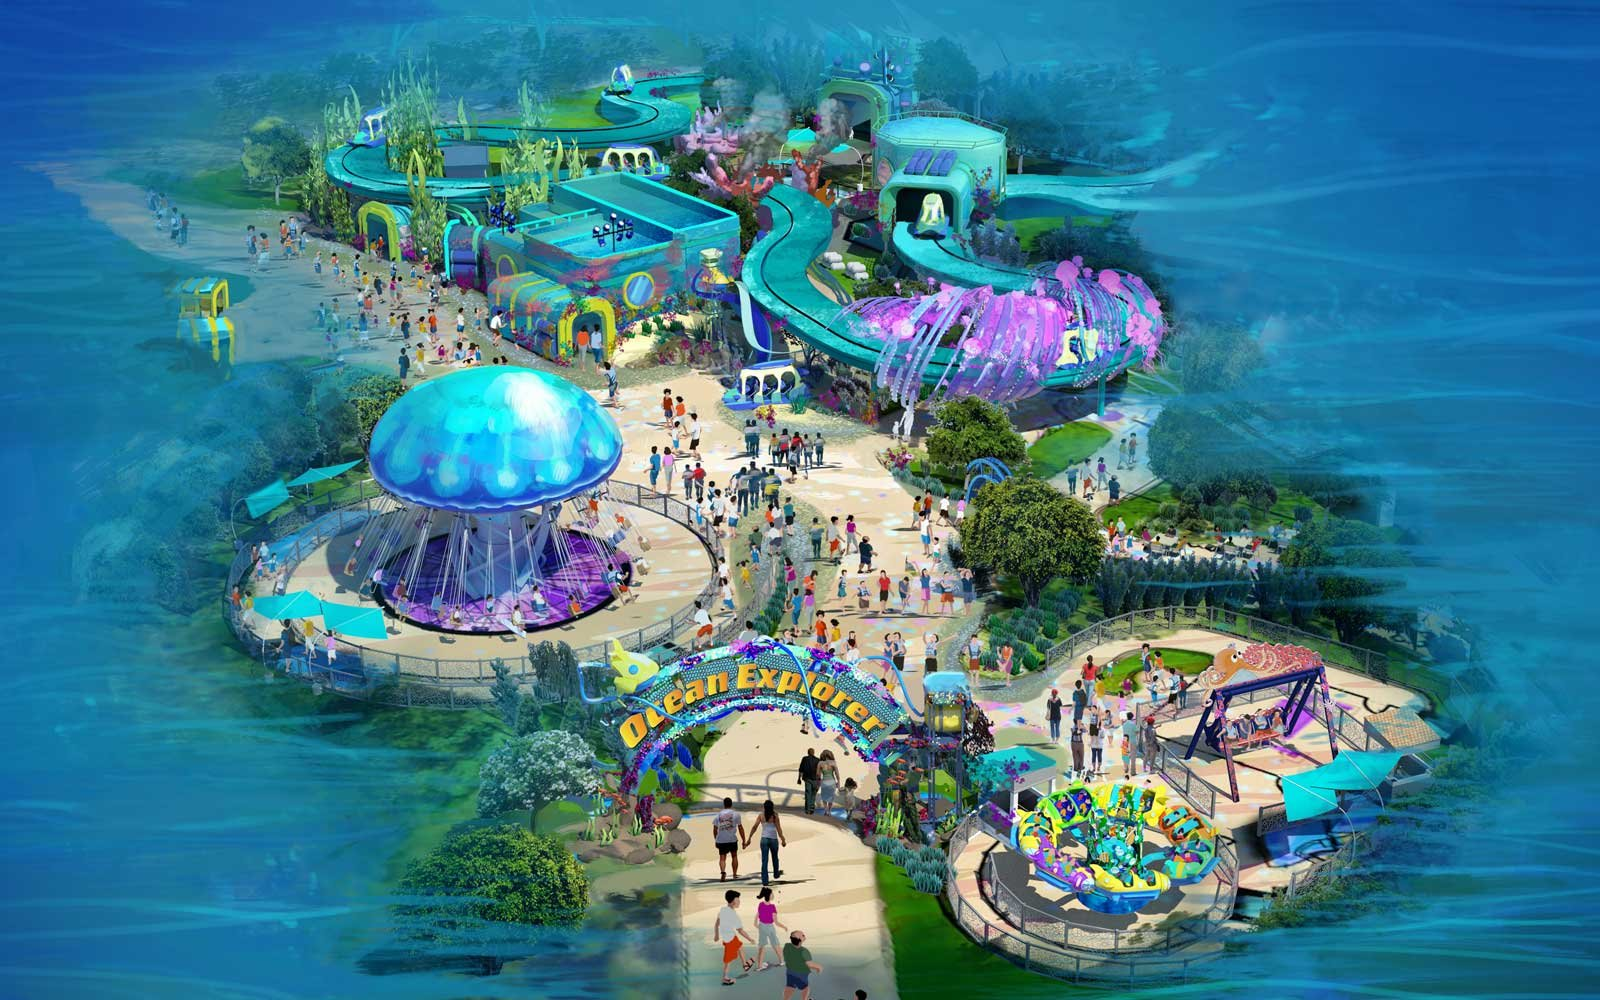 Every New Ride Coming to Amusement Parks in 2017 | Travel ...